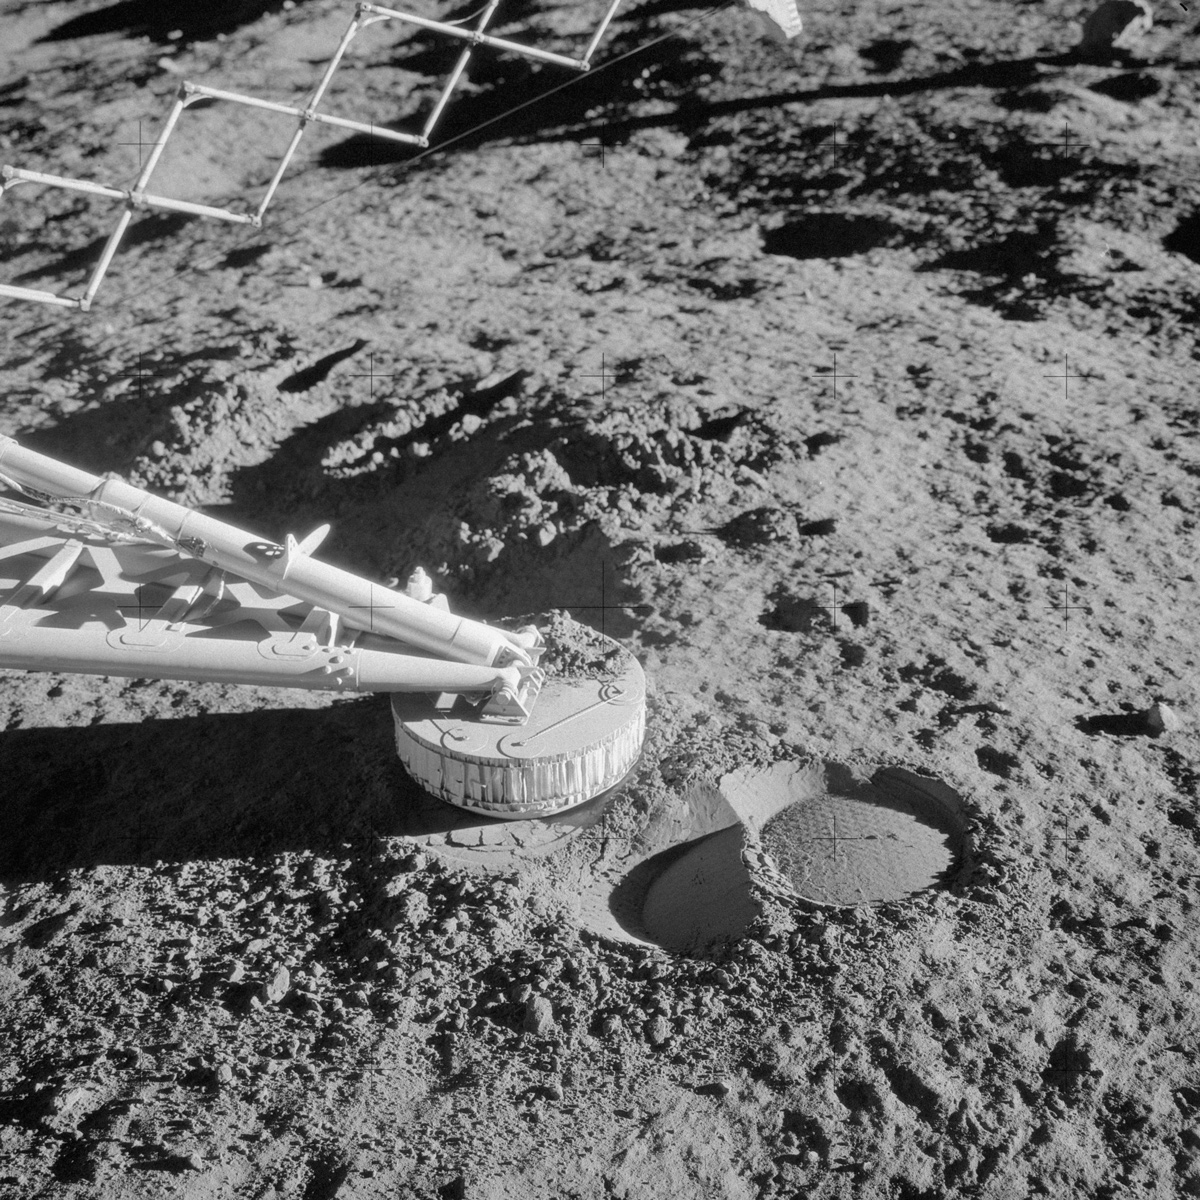 Close-up of the footpad of Surveyor 3 on lunar surface